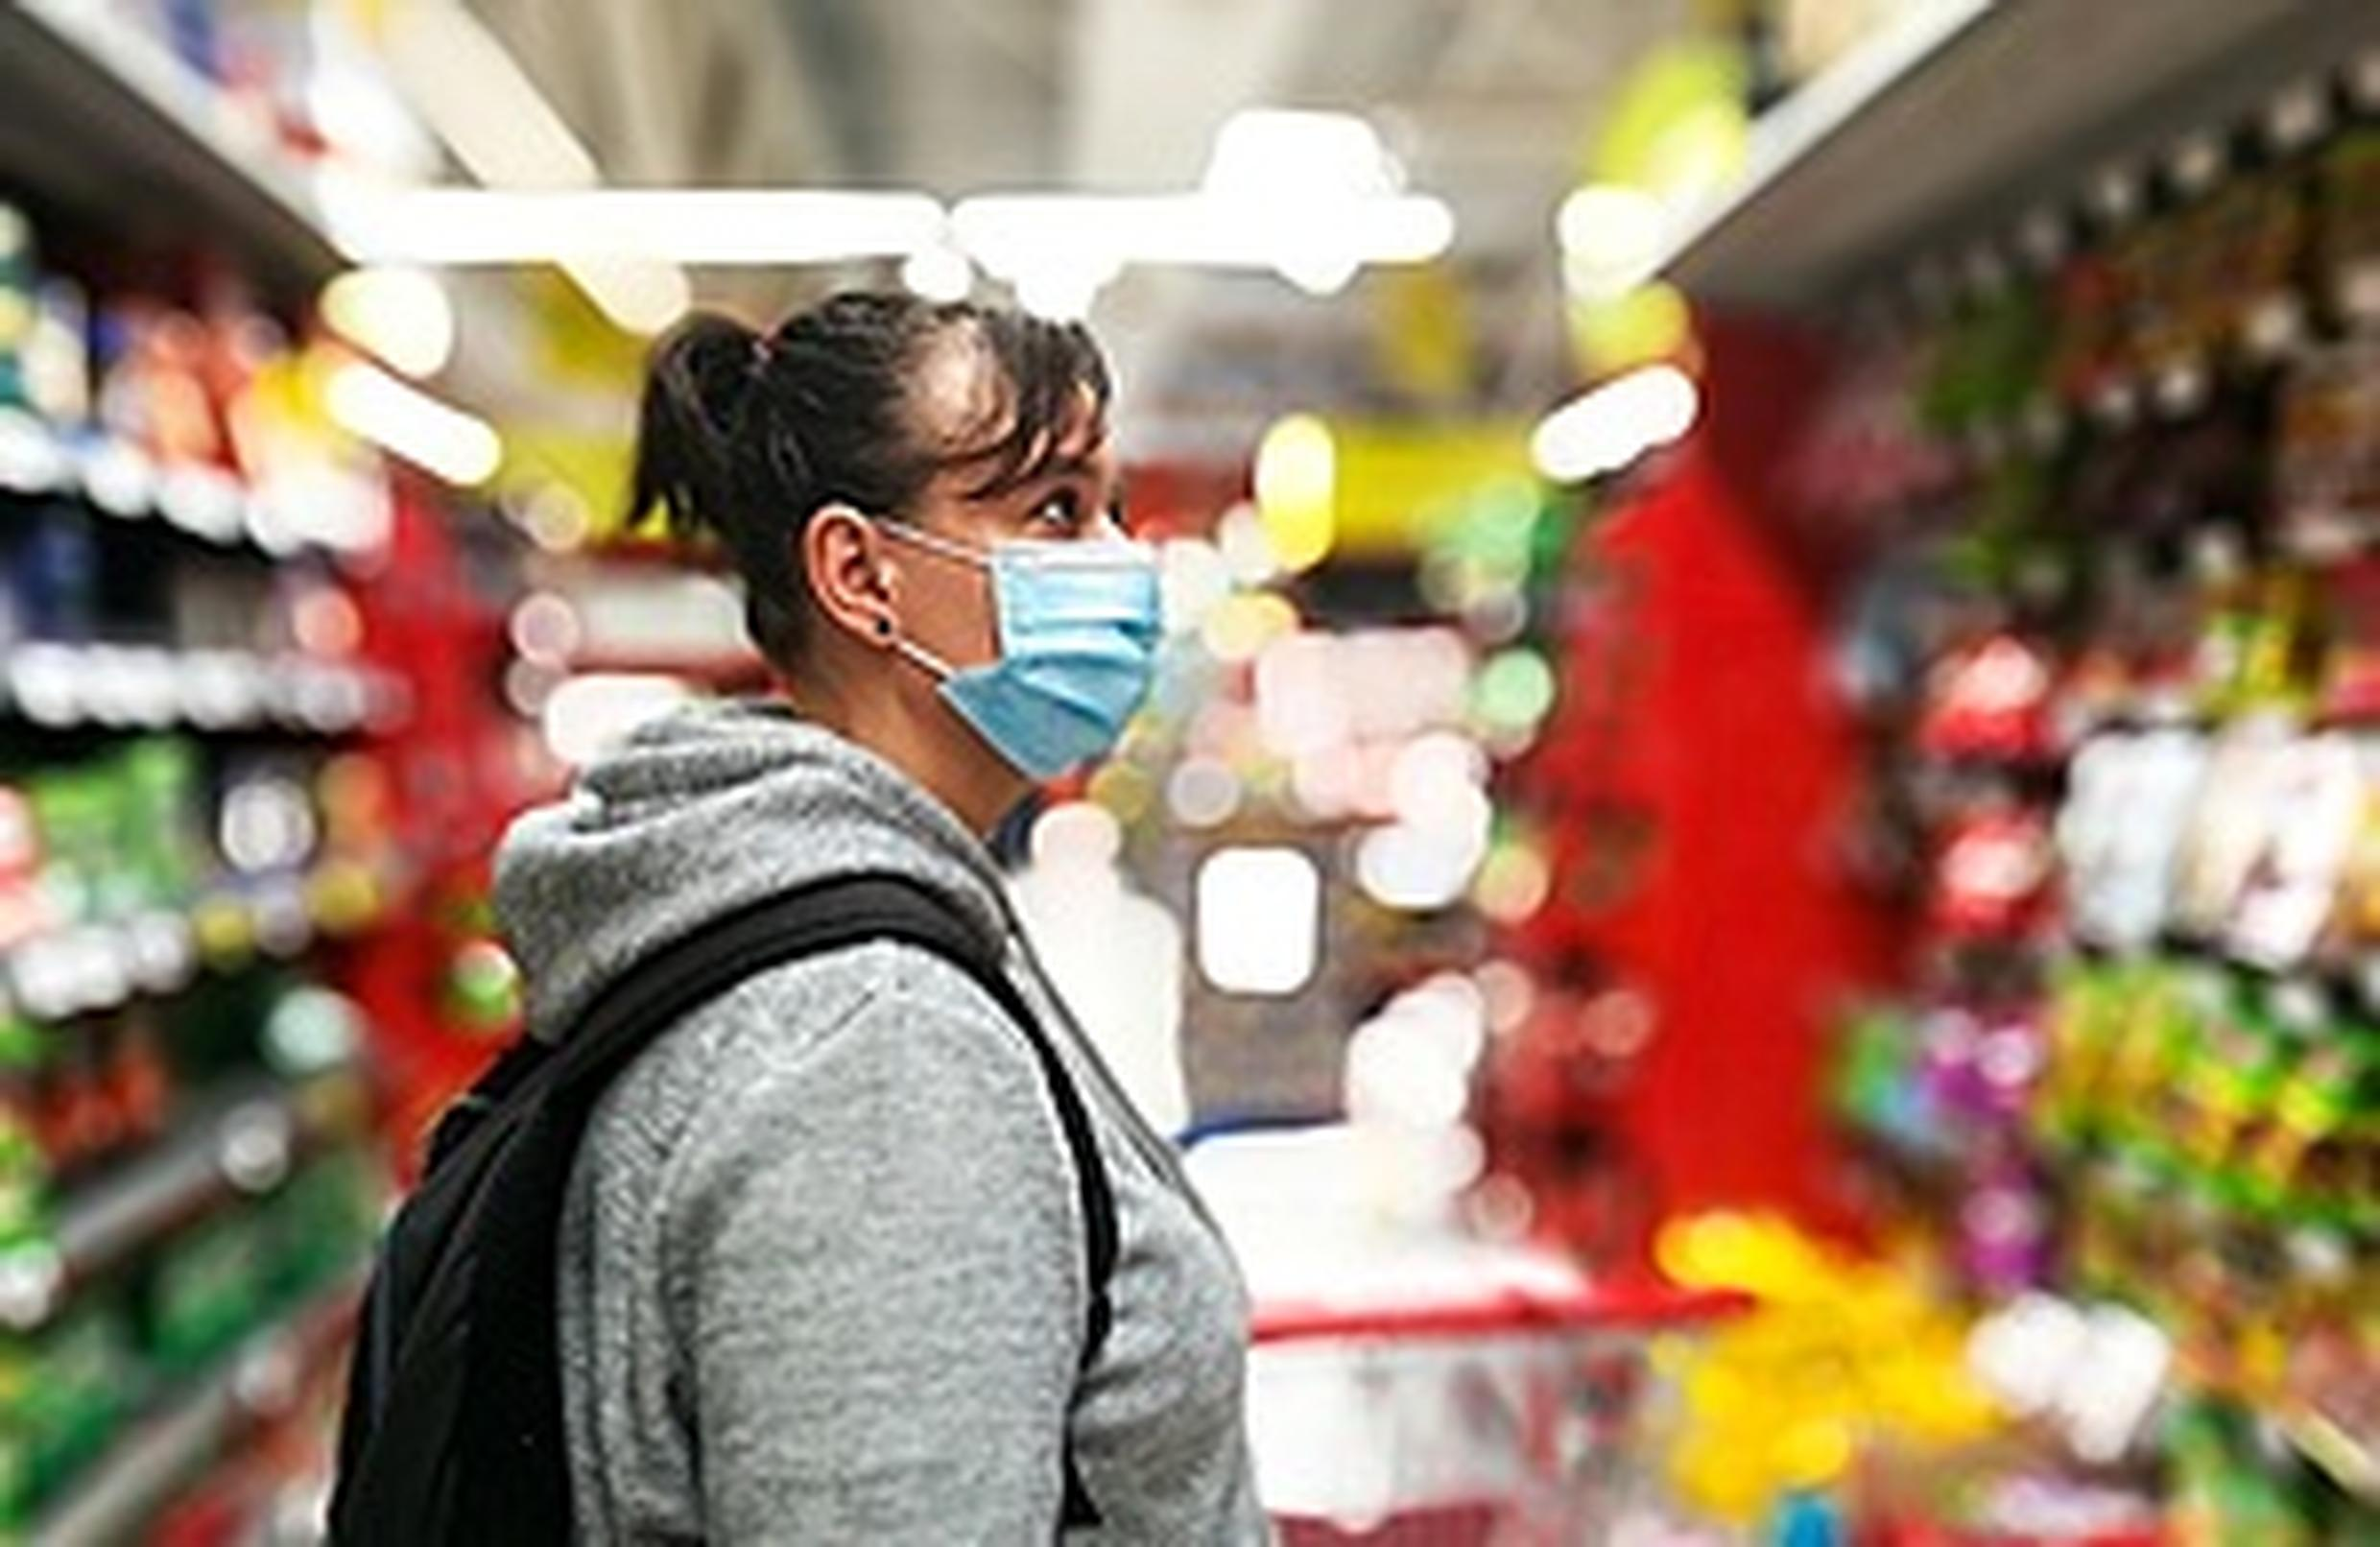 Masks can be beneficial on public transport or when visiting shops, says government